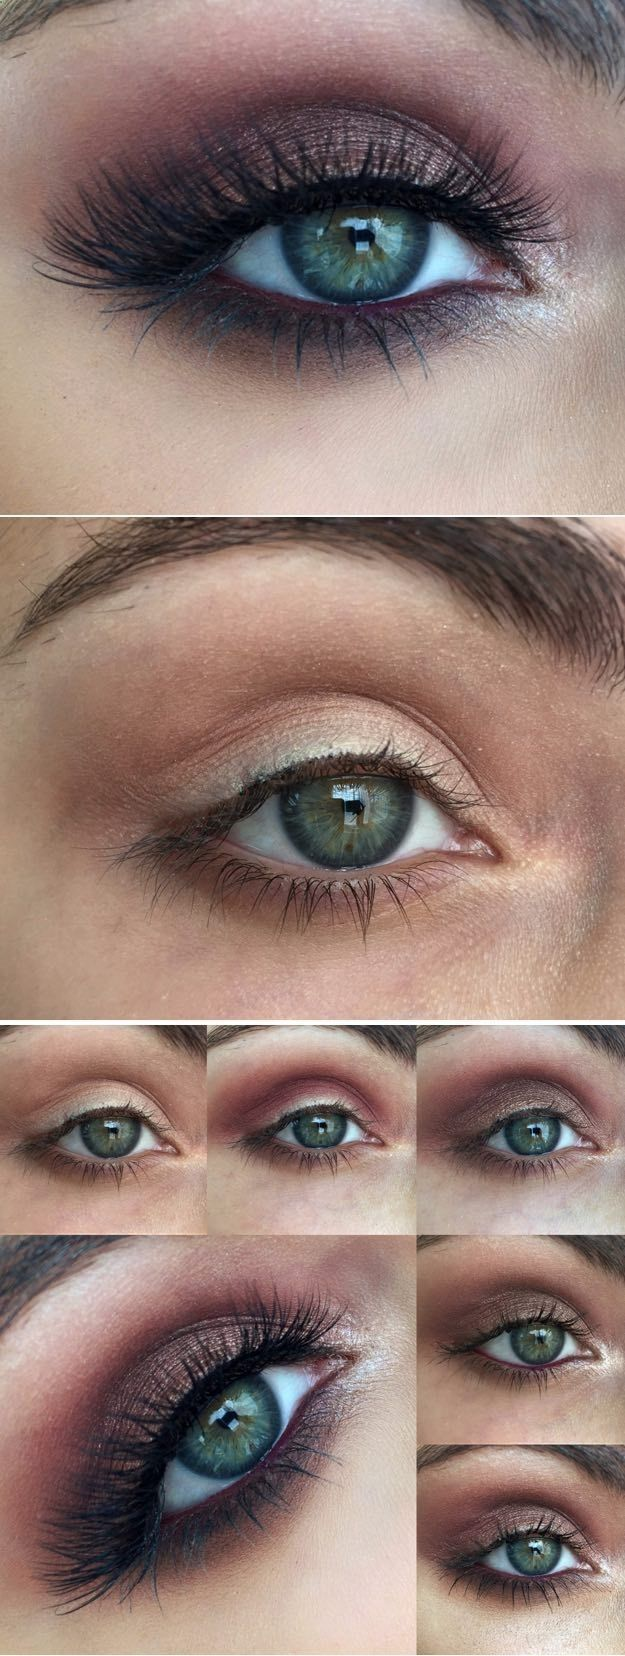 Makeup Tutorials for Blue Eyes -Vampy Tutorial For Blue Eyes -Easy Step By Step ...